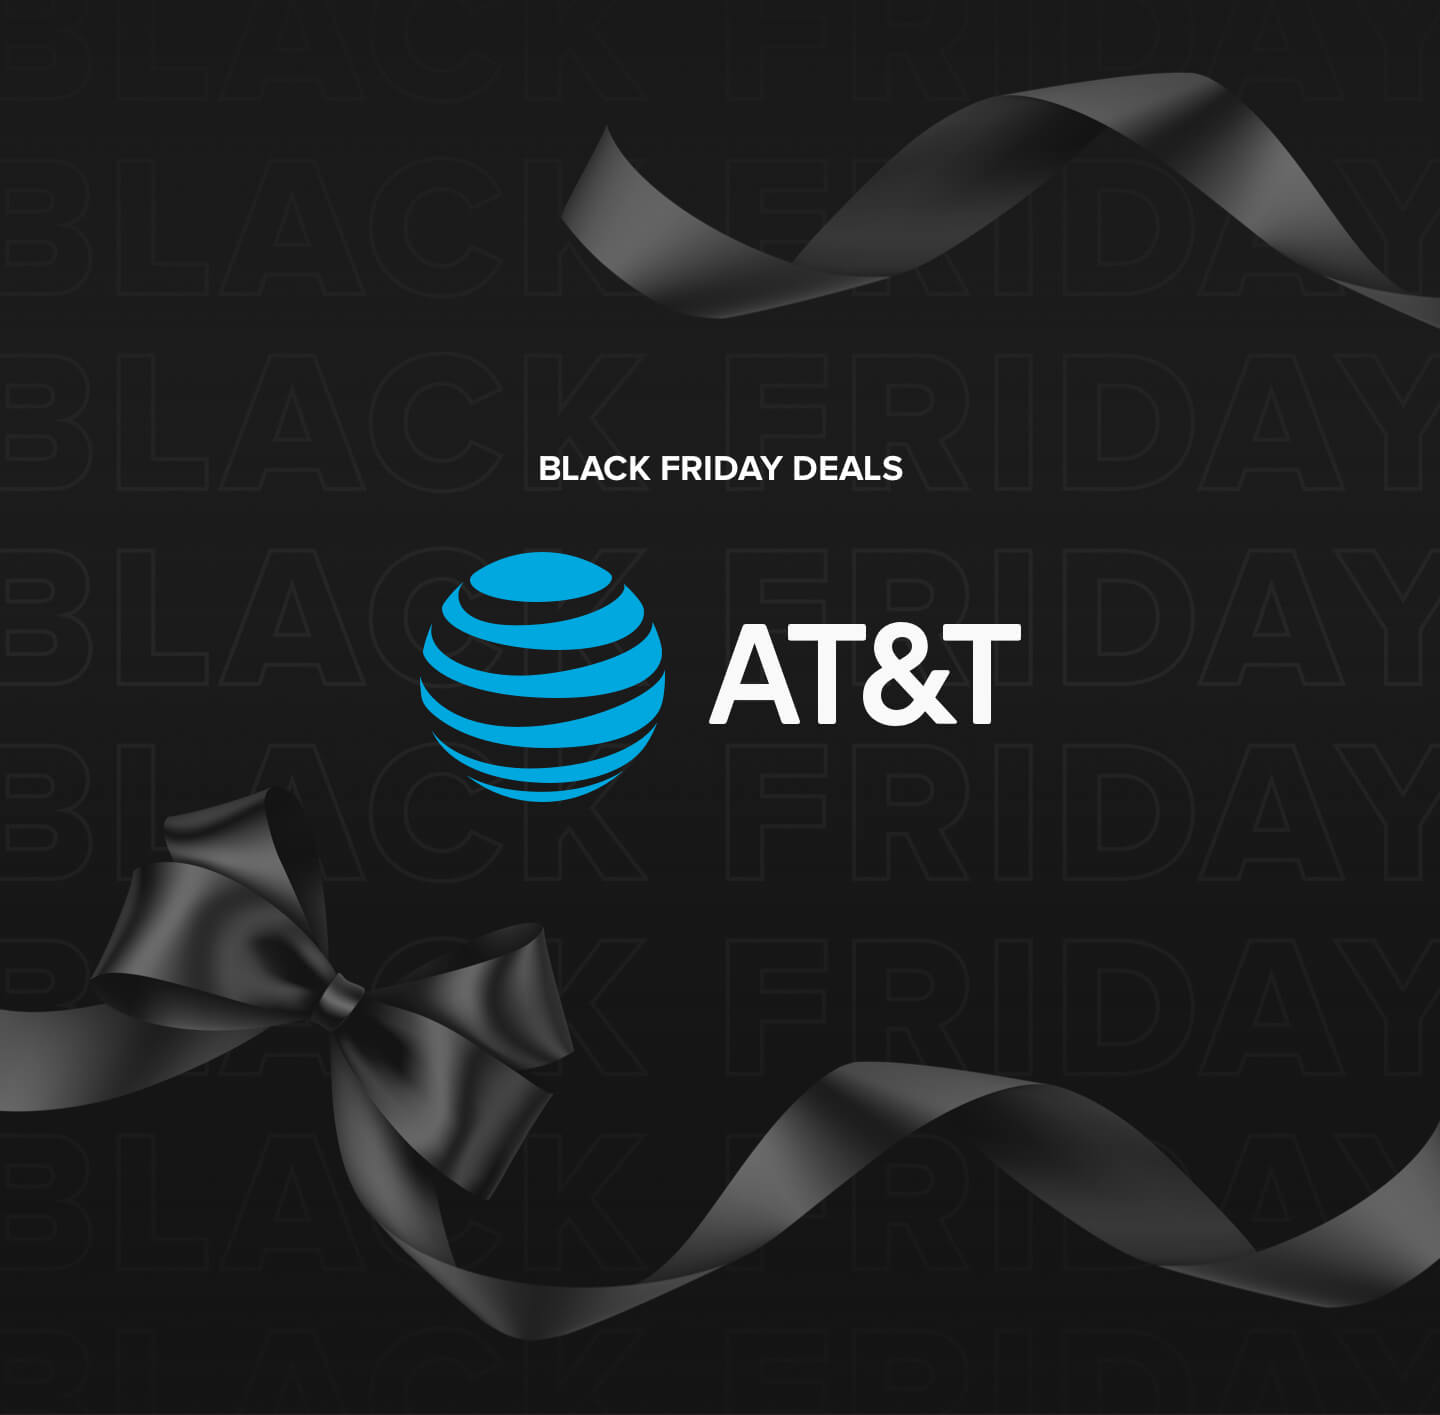 Image promoting AT&T Black Friday deals